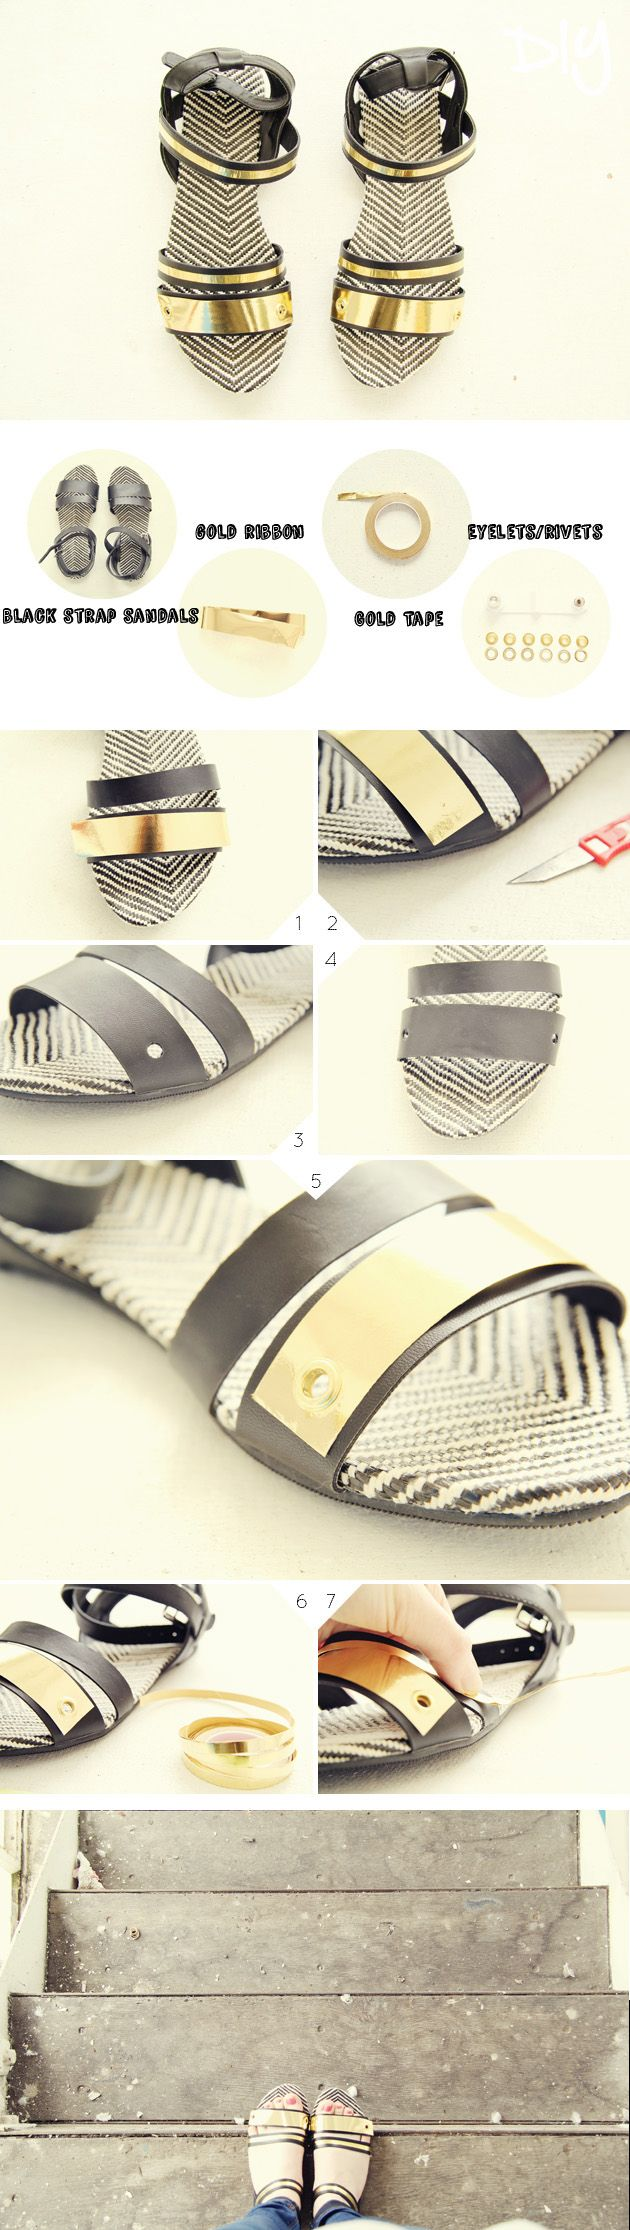 Go go gold strap sandals tutorial Fall For DIY